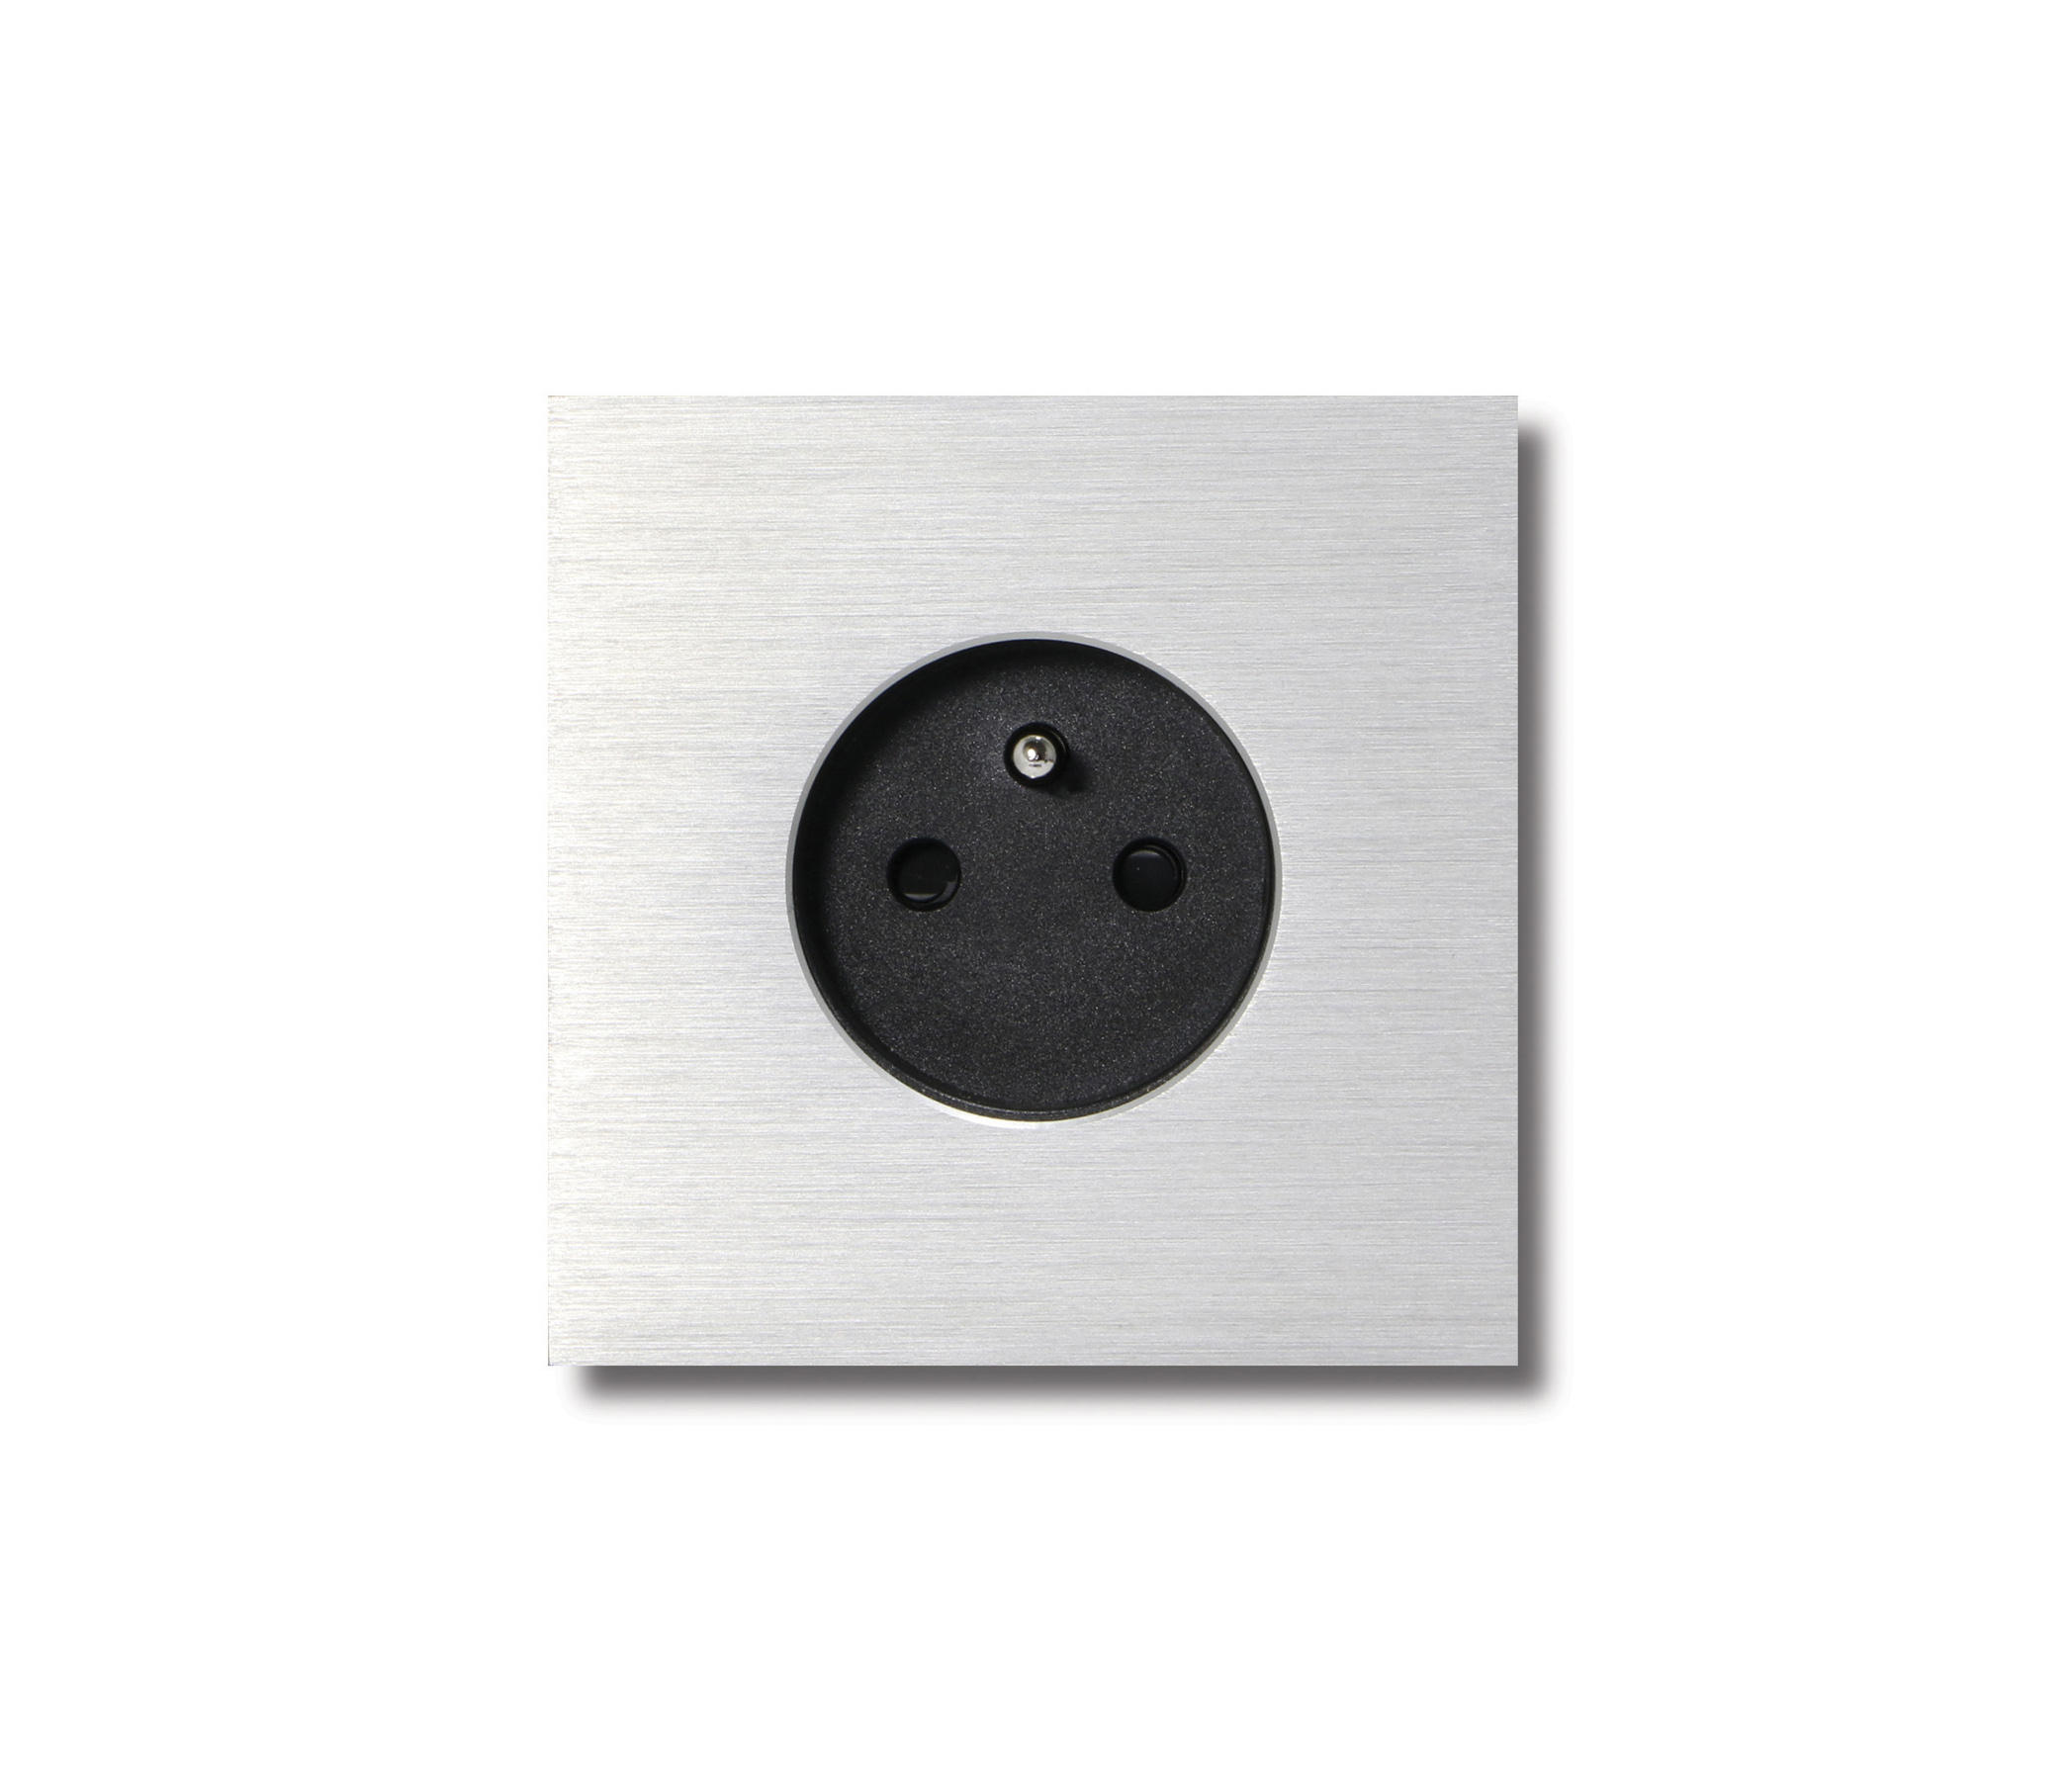 POWER OUTLET - BRUSHED ALUMINIUM - 1-GANG - Schuko sockets from ...